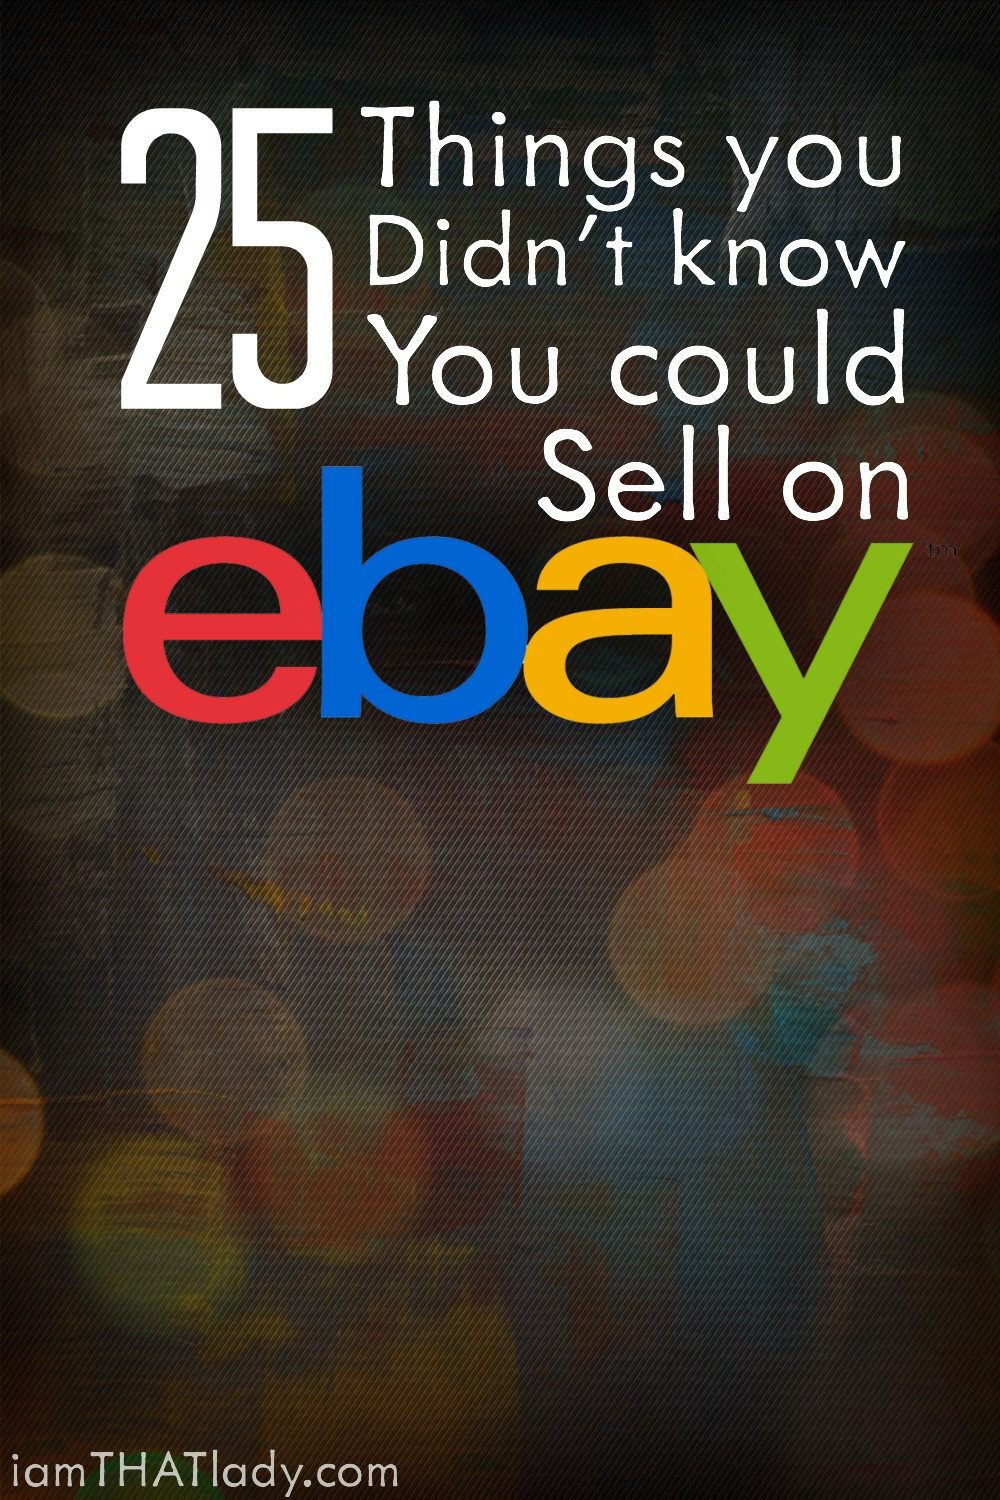 Ebay Vases for Sale Of 24 Inspirational Ebay Wedding Decorations Used Wedding Property Pertaining to Ebay Wedding Decorations Used Awesome 25 Things You Didn T Know You Could Sell On Ebay